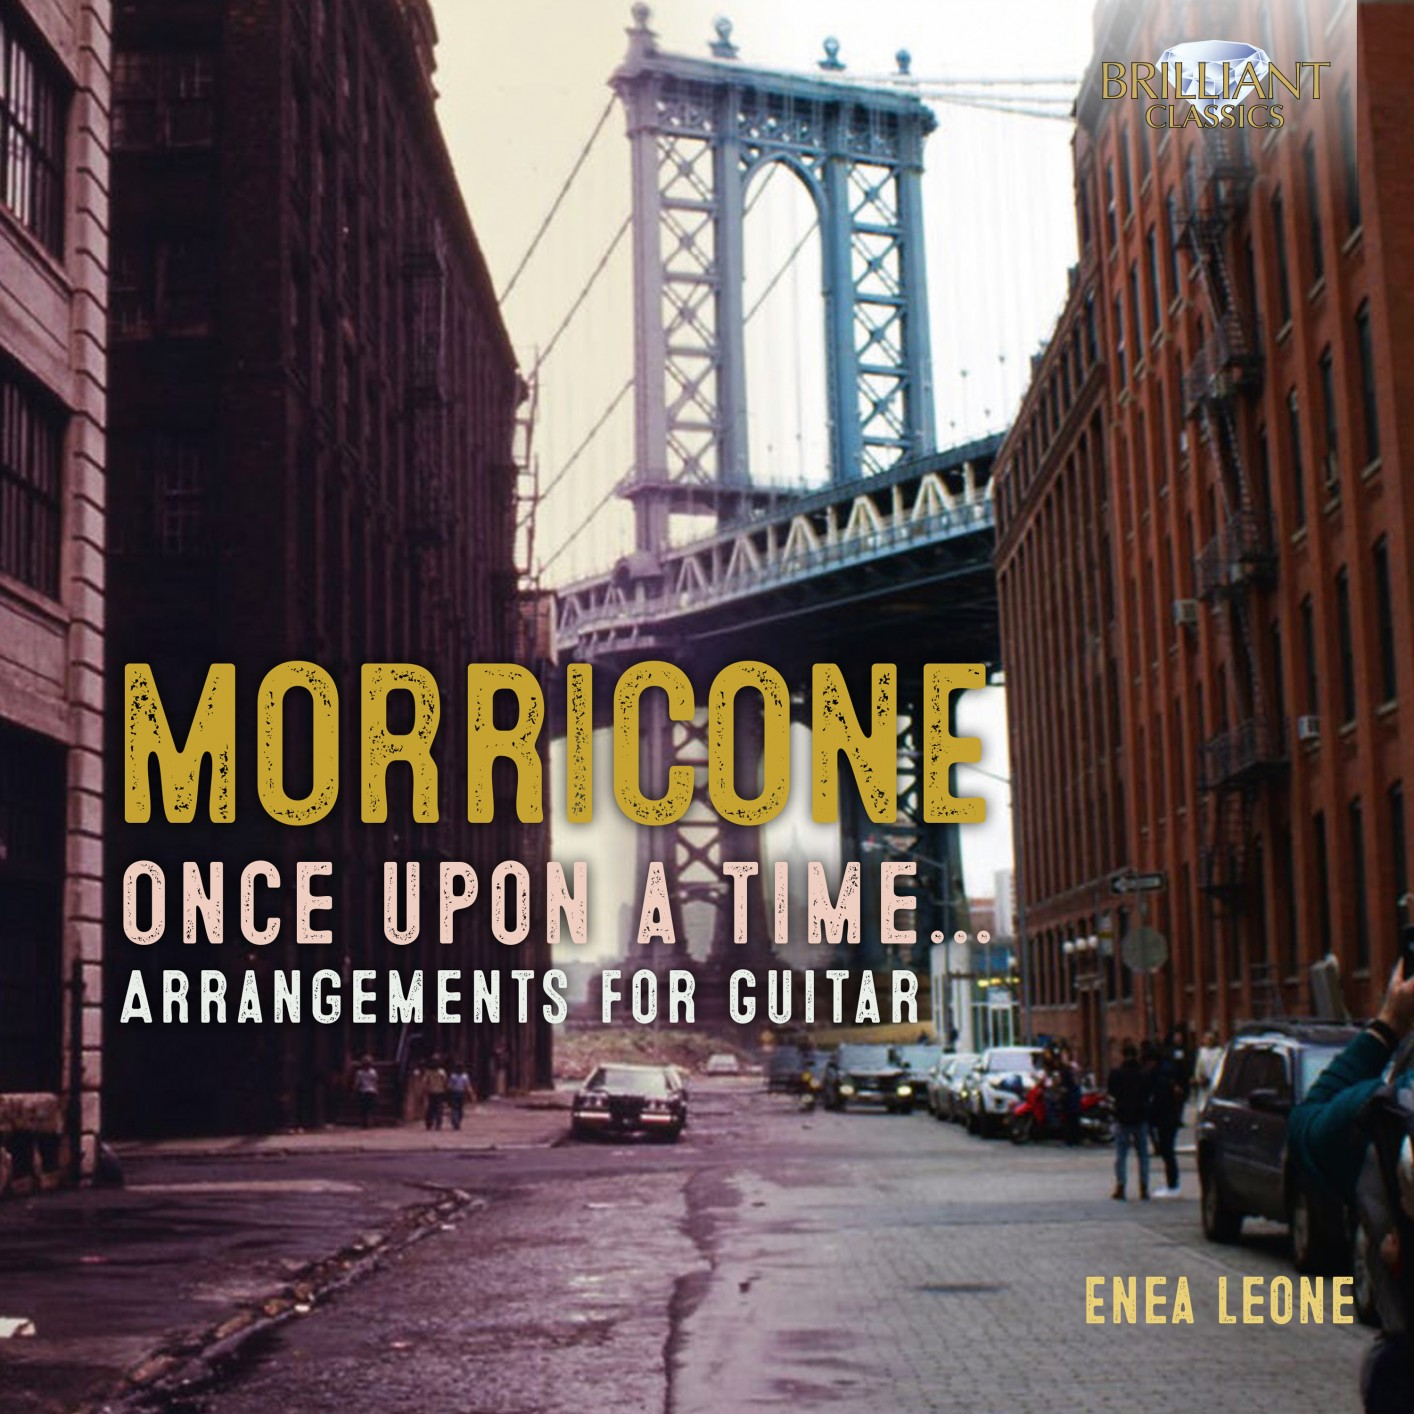 Morricone: Once Upon a Time, Arrangements for Guitar | HIGHRESAUDIO